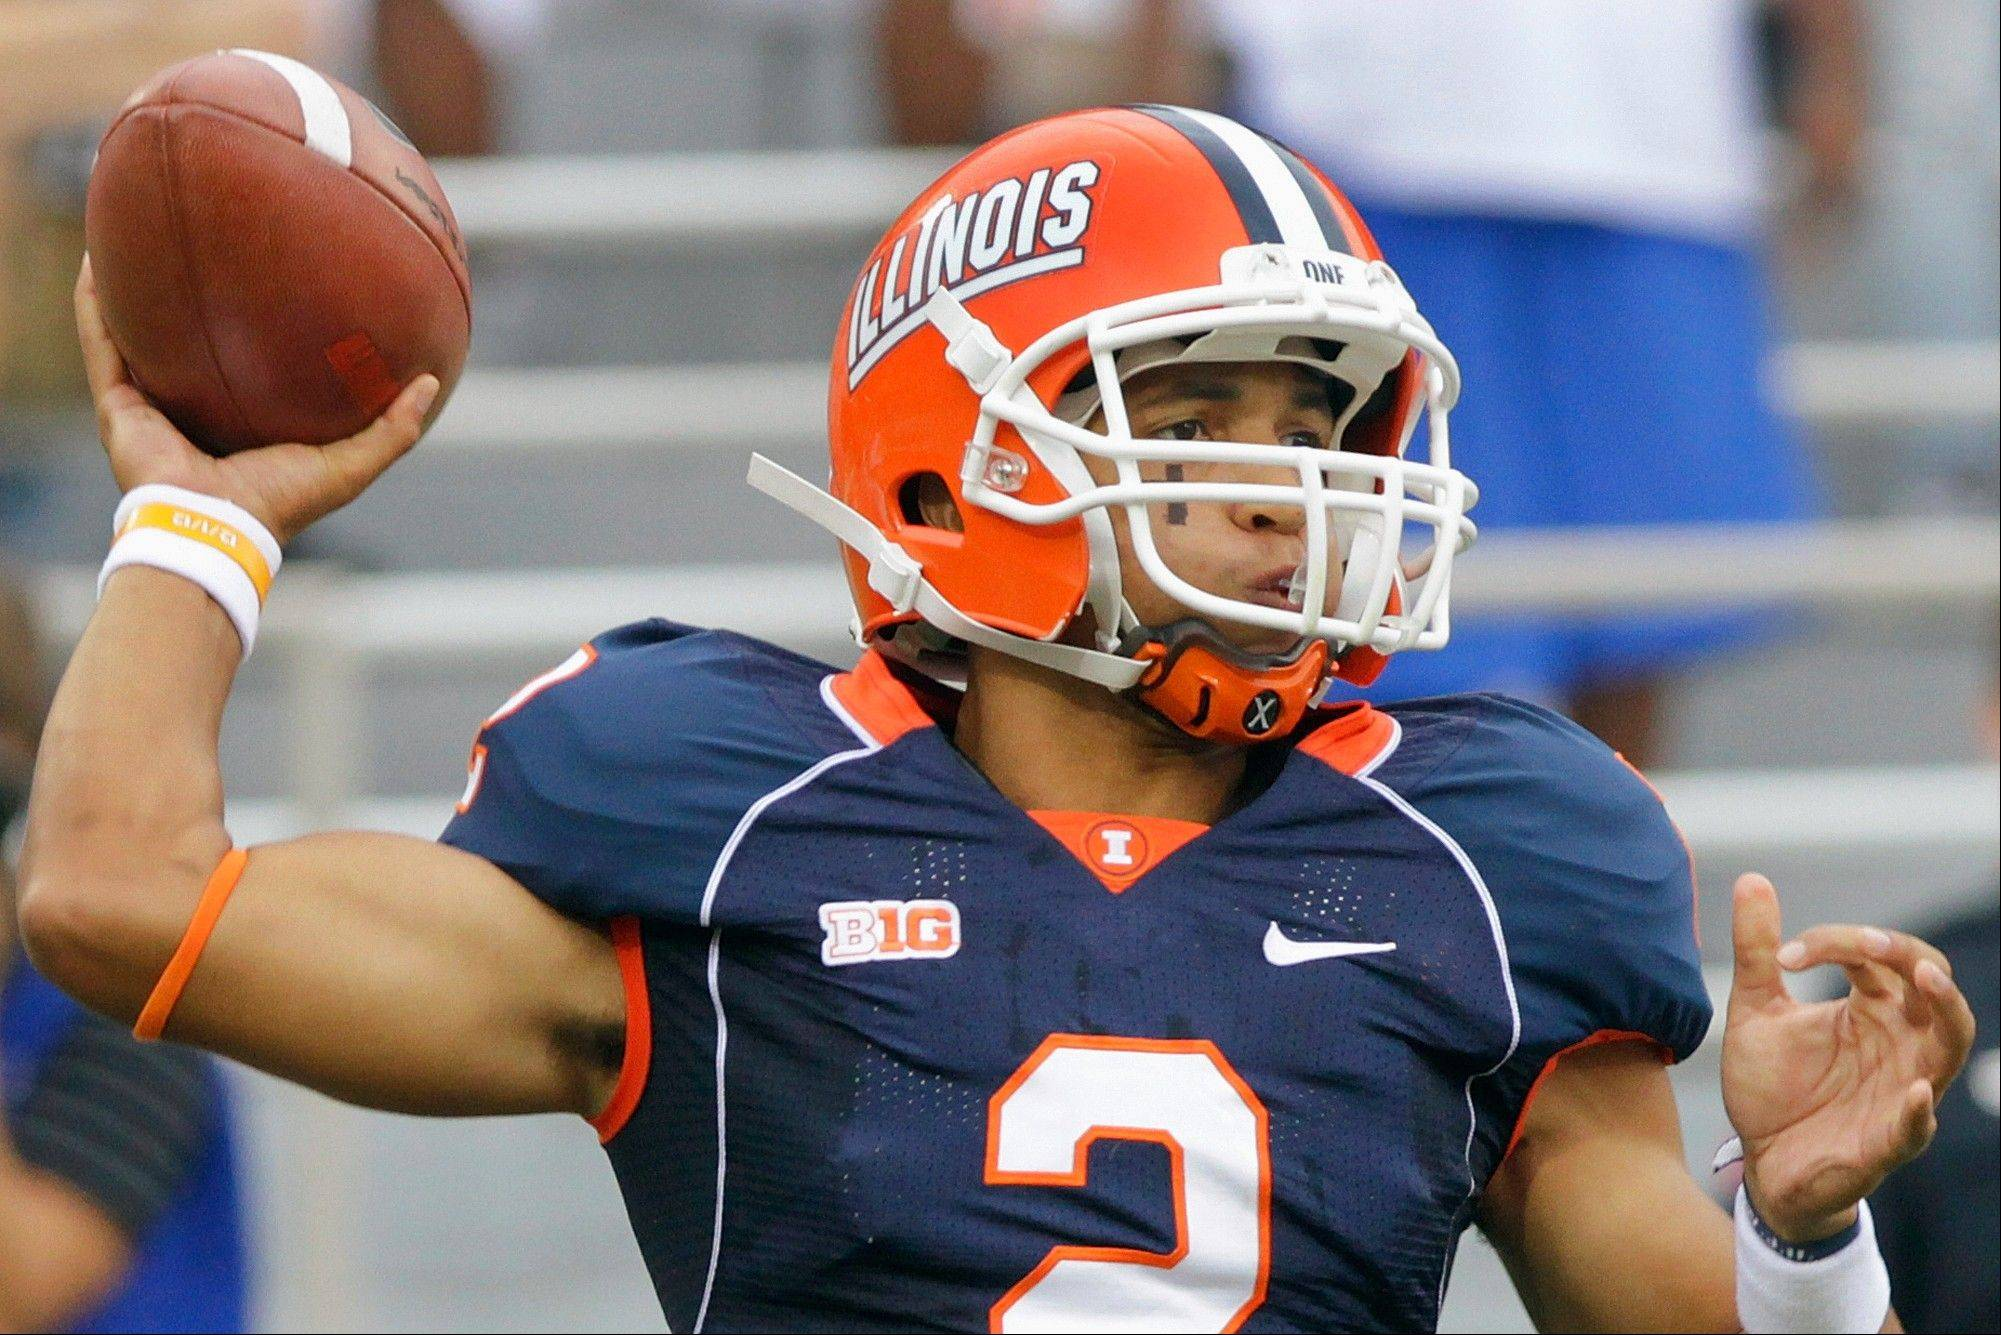 In this photo taken Sept. 1, 2012, Illinois quarterback Nathan Scheelhaase passes against Western Michigan during an NCAA college football game in Champaign, Ill. Head coach Tim Beckman isn't expected to announce whether Scheelhaase, who injured his ankle in the game, will be allowed to play Saturday, Sept. 8 at Arizona State. Scheelhaase did practice Wednesday and may be able to play.